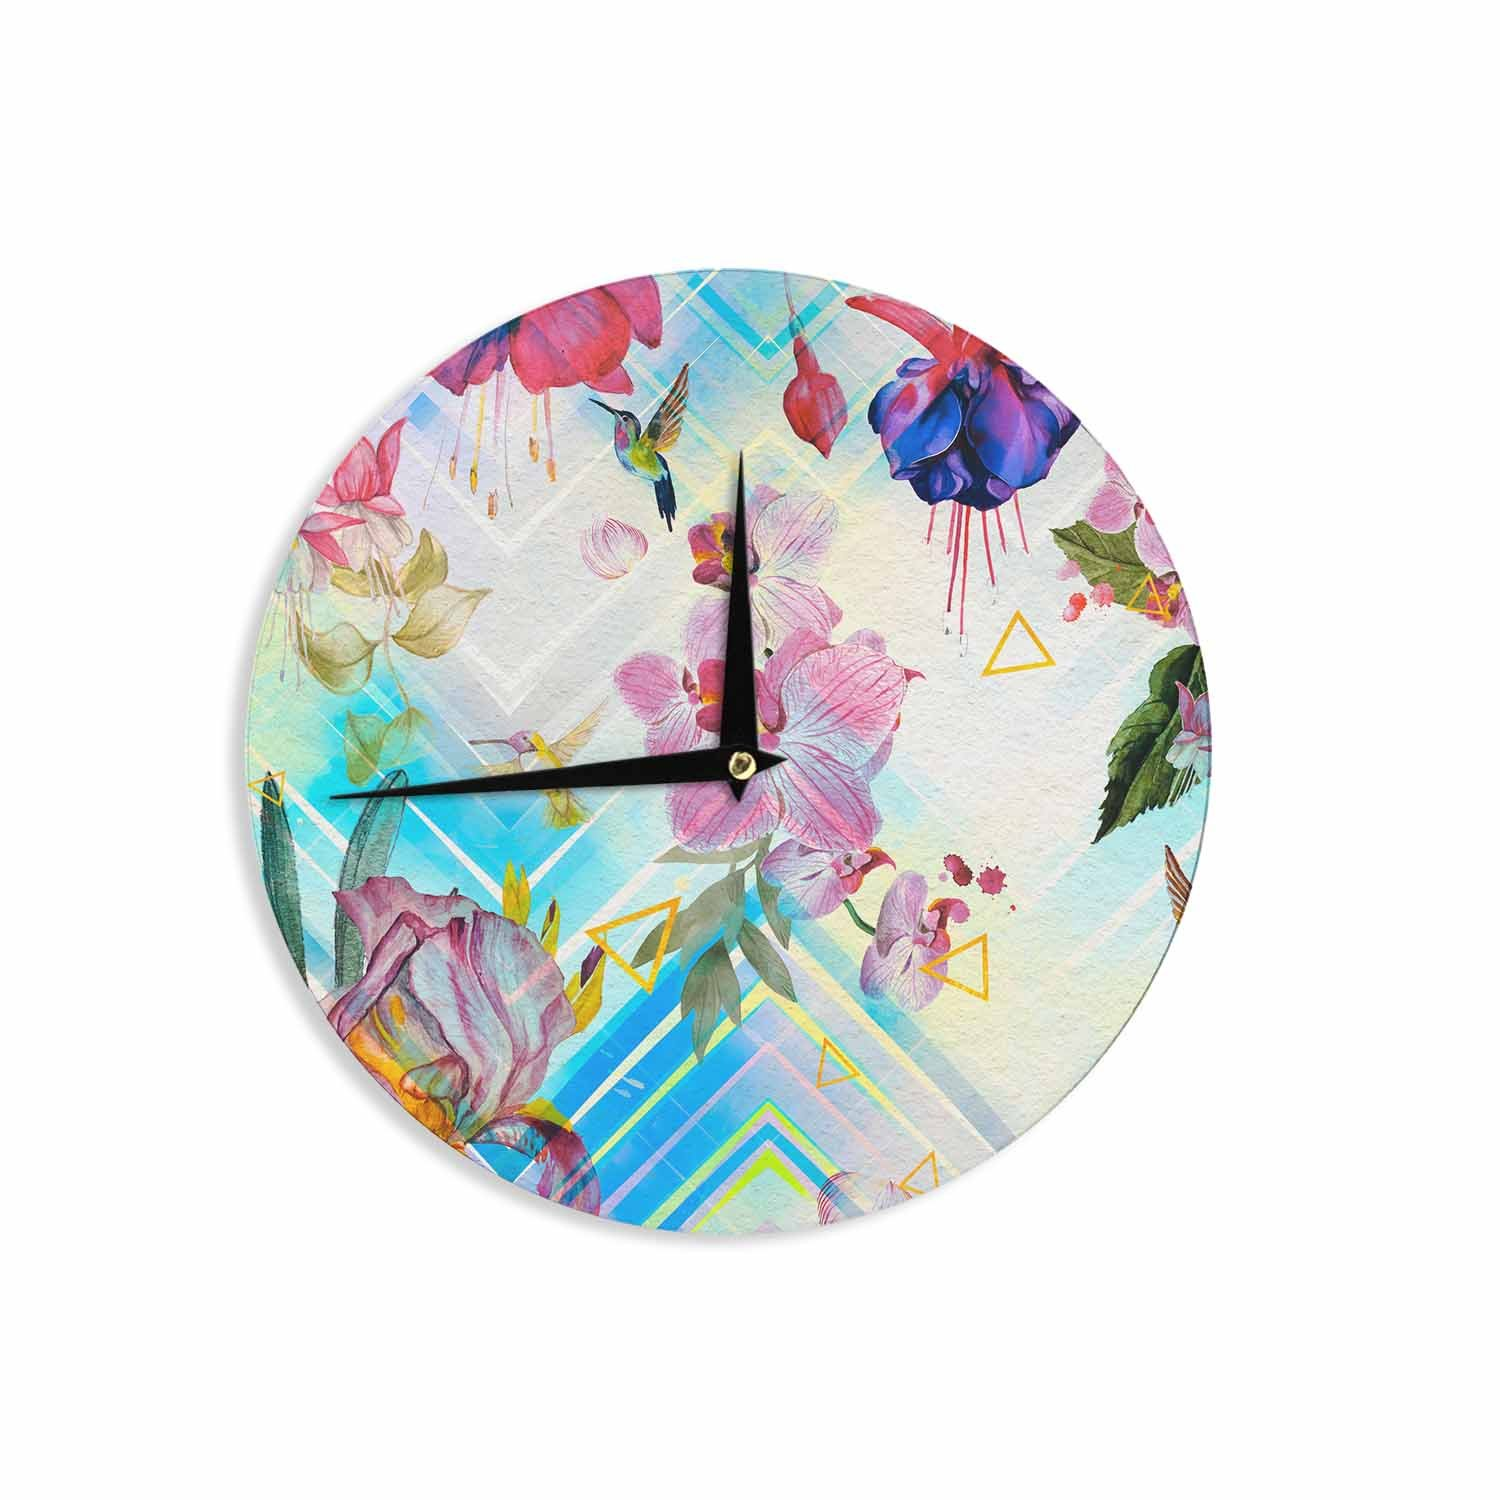 12 Wall Clock Kess InHouse Mmartabc Geometric with Tropical Nature Blue Multicolor Watercolor